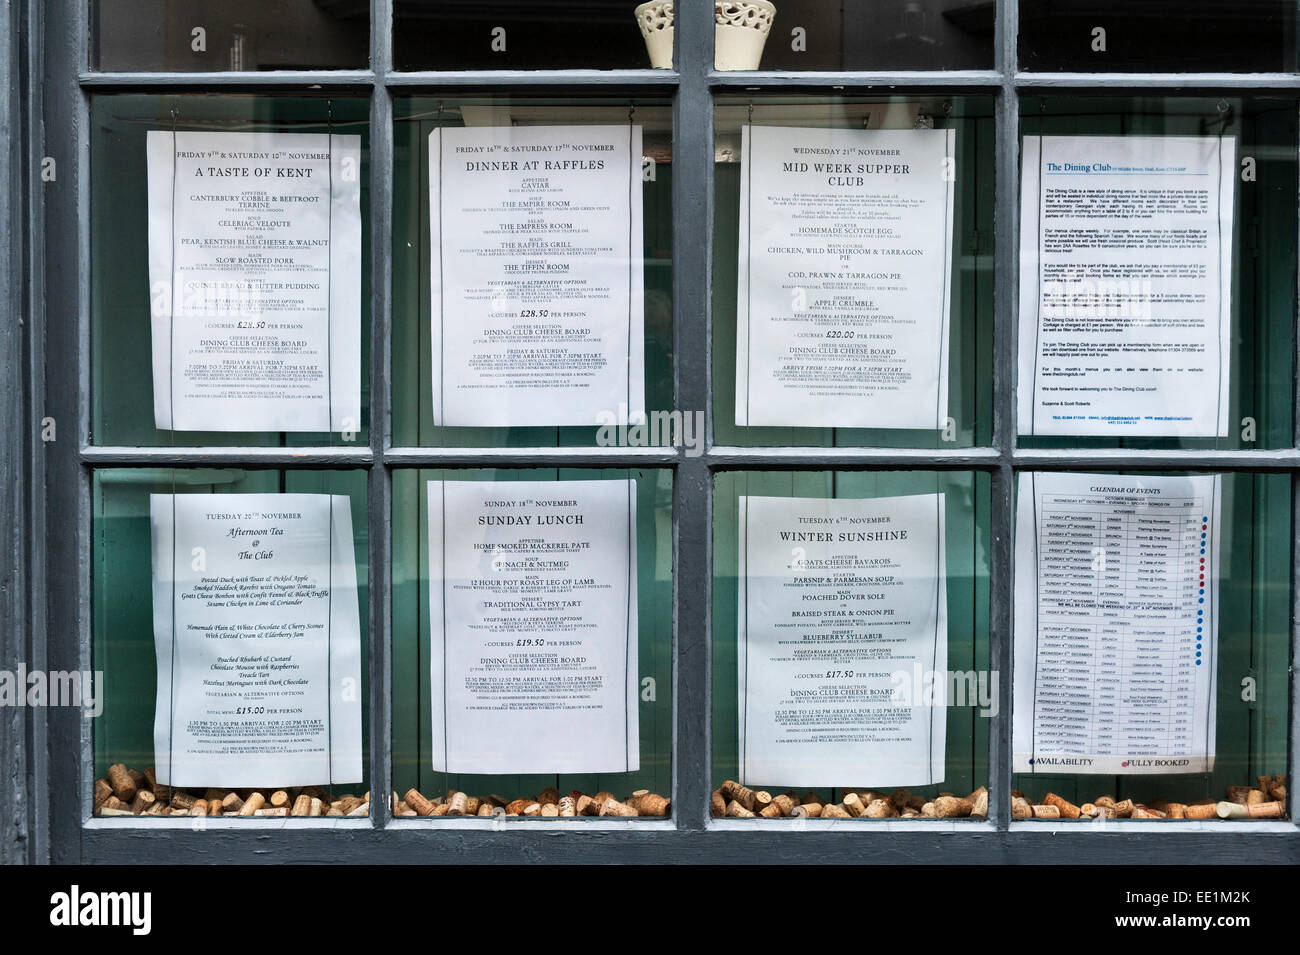 Deal, Kent, UK. Menus for forthcoming events at the Deal Dining Club, a members only restaurant - Stock Image